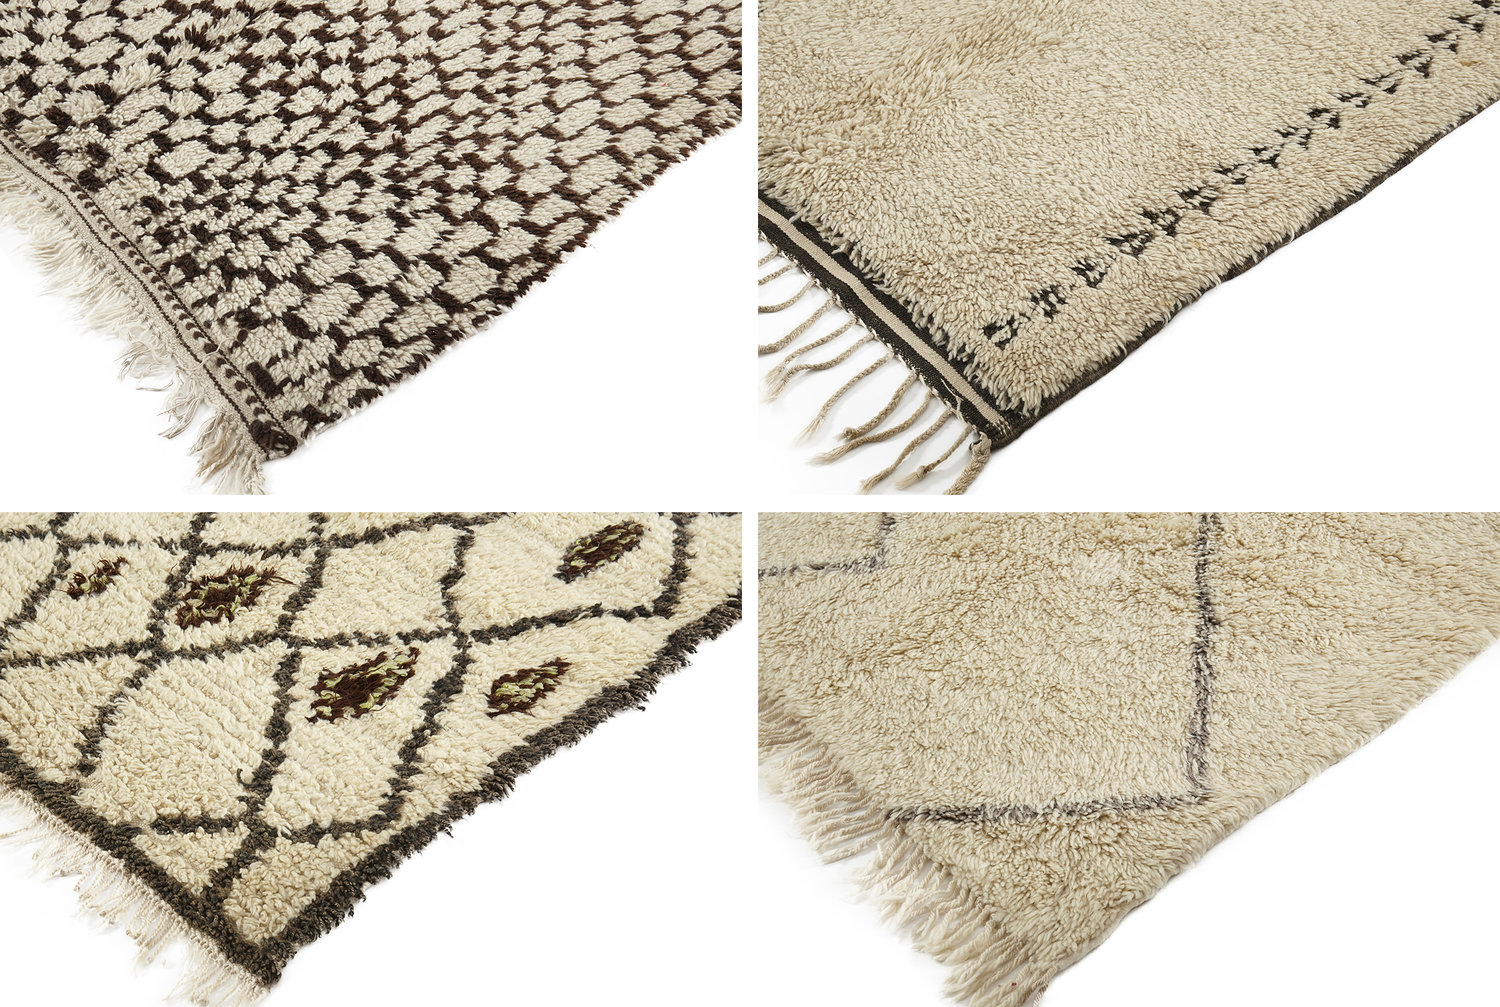 From left to right: 1) Beni Ouarain Long Runner 2) Beni Ouarain Rug 3) Moroccan Azilal 4) New made Moroccan Beni Ouarain